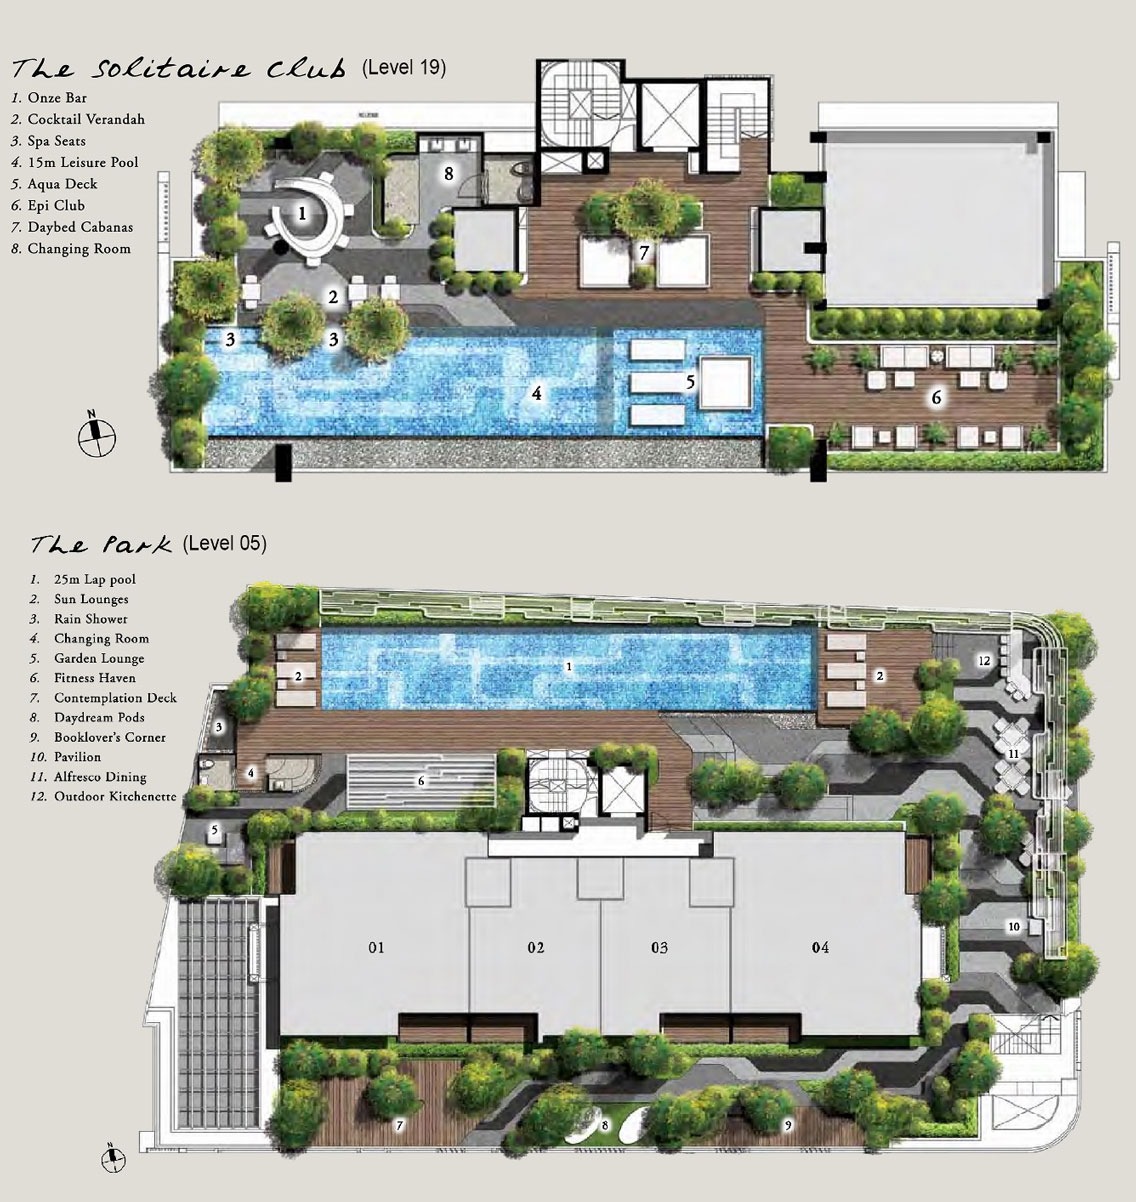 Onze residential site plan cropped propertynet sg for Residential site plan